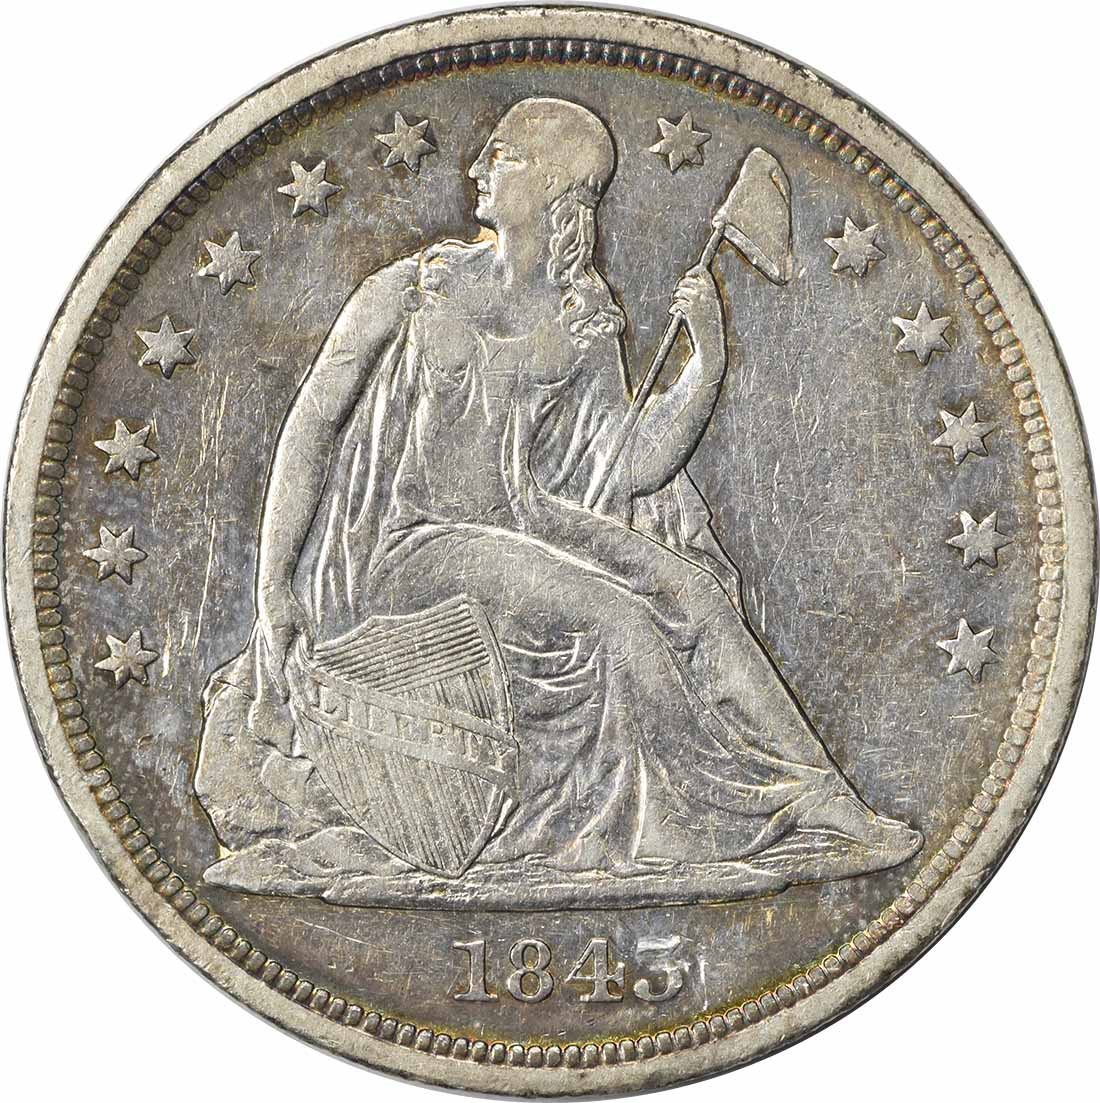 1843 Liberty Seated Silver Dollar EF Uncertified